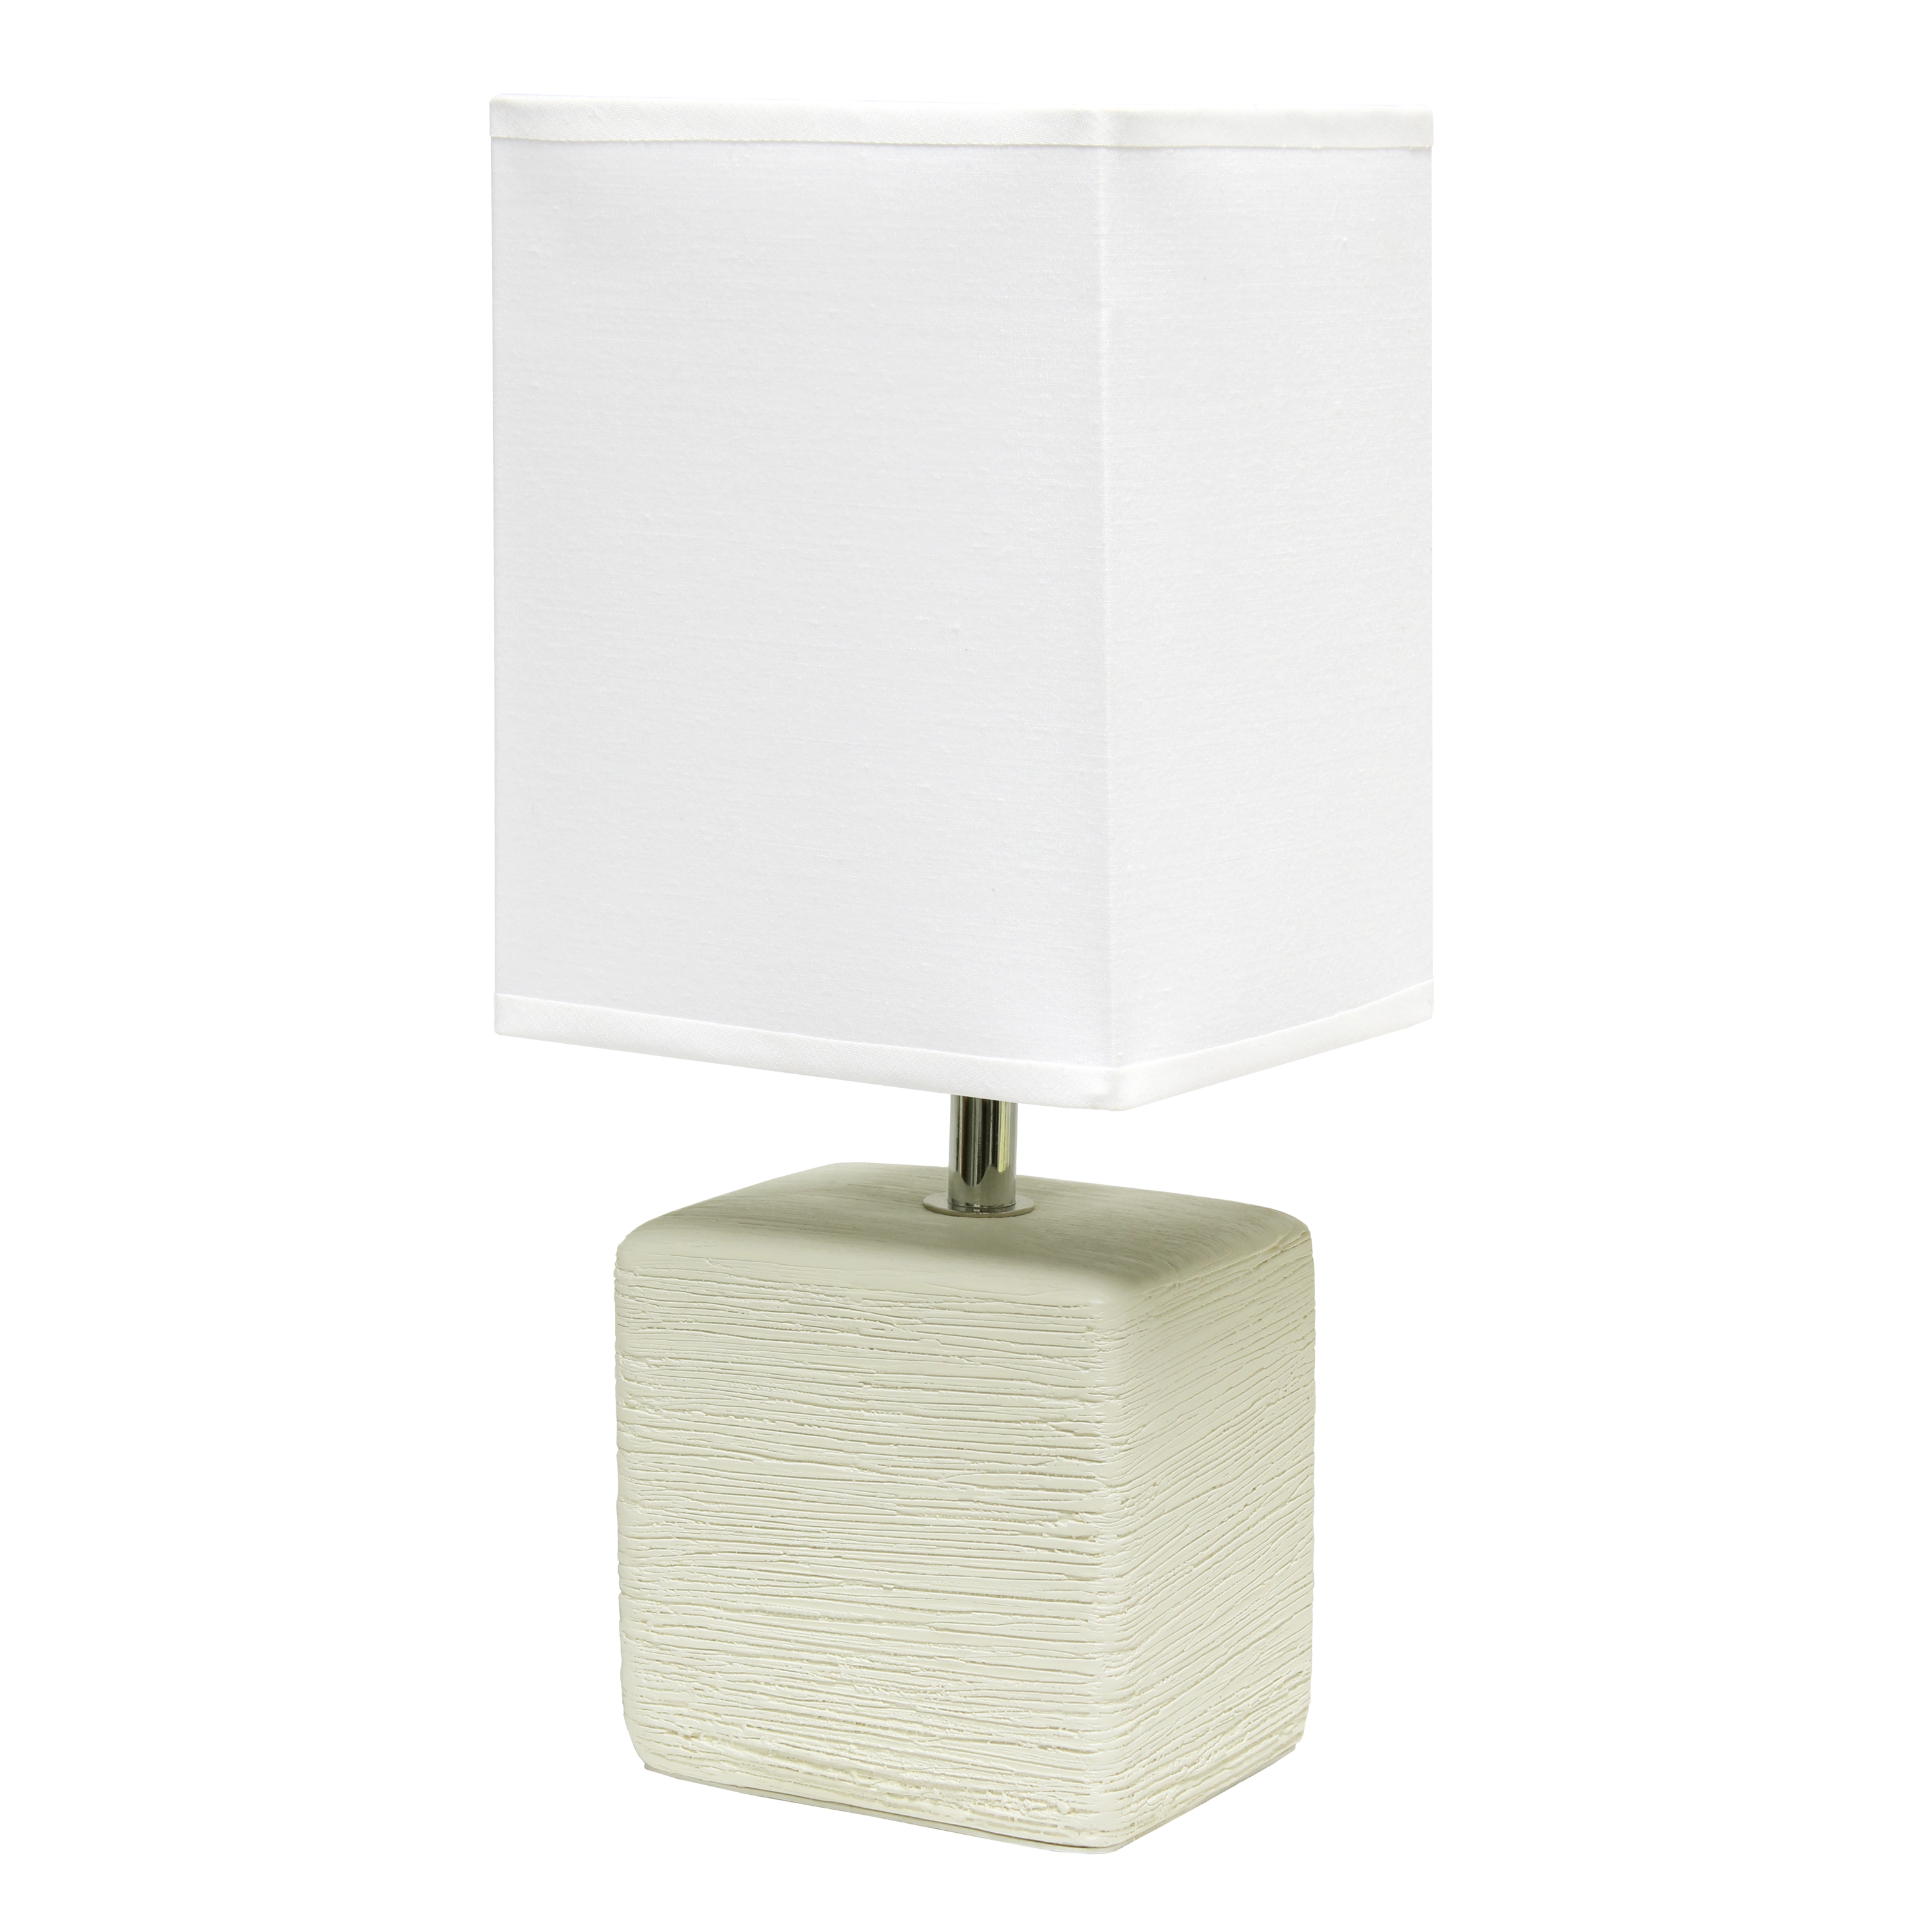 Simple Designs Petite Faux Stone Table Lamp with Fabric Shade, OffWhite with White Shade